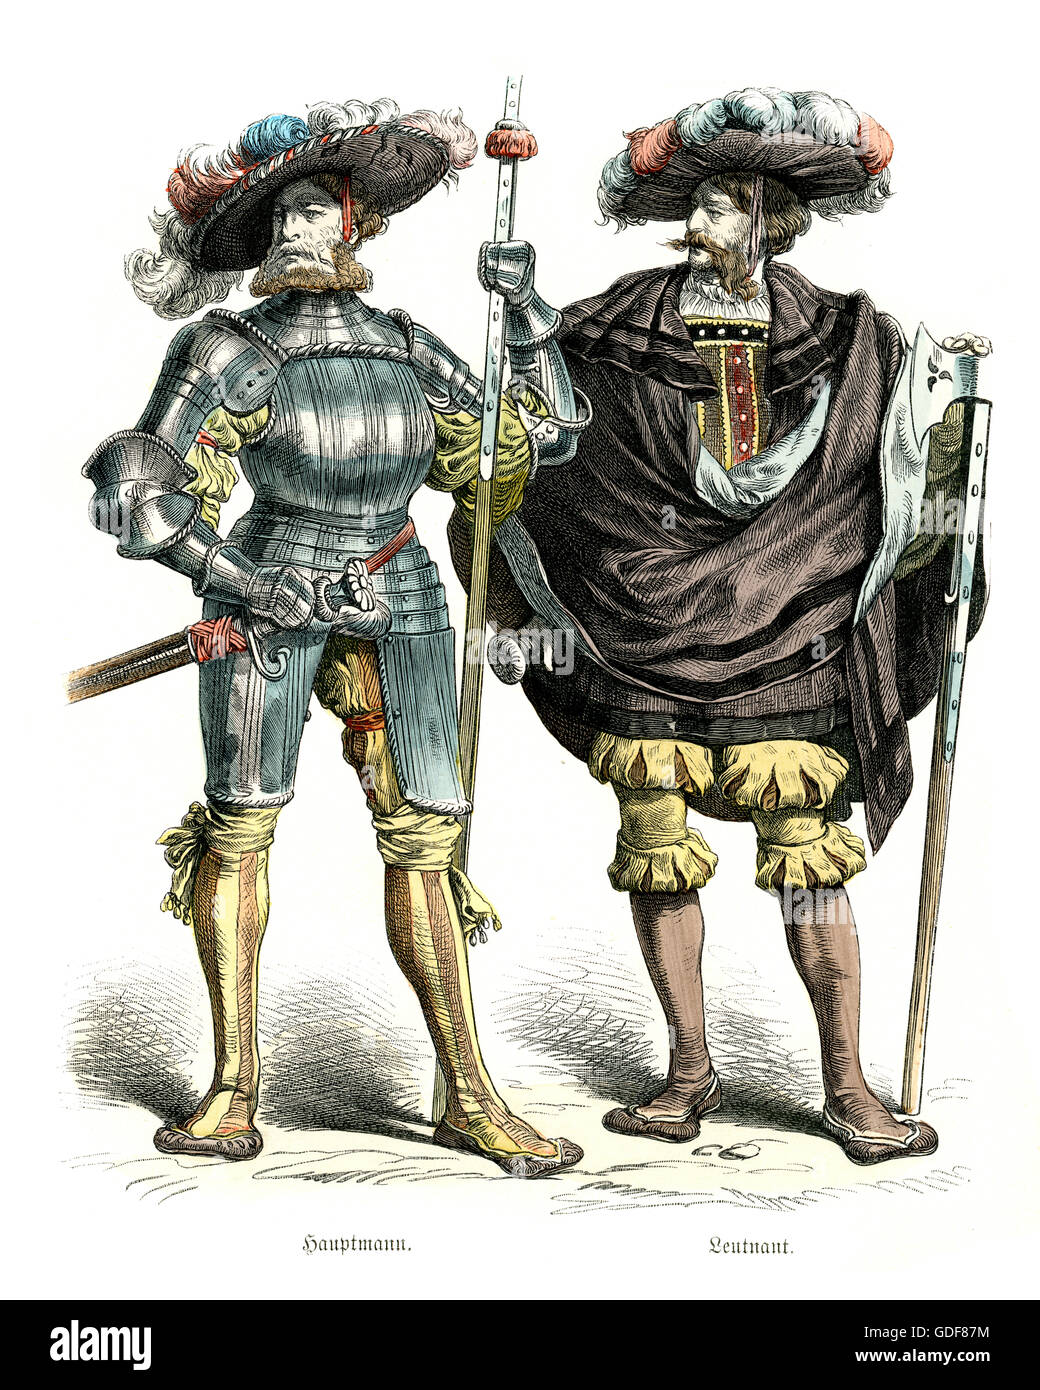 e4c886d33b8b9 Costumes of German Landsknecht Soldiers of the 16th Century. Mercenary  Captain and lieutenant.